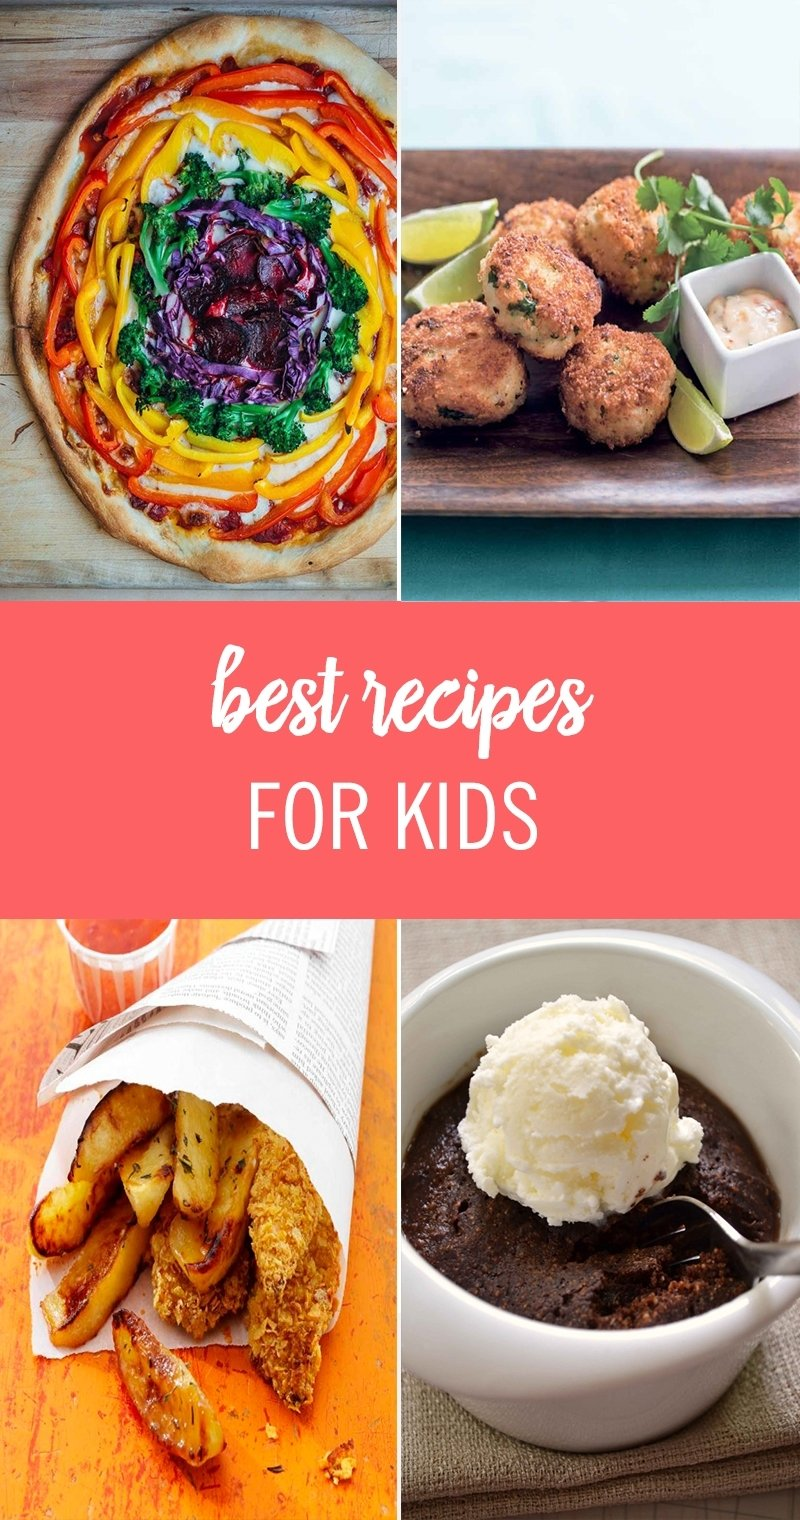 10 Trendy Meal Ideas For Picky Eaters cooking for kids 50 best recipes for kids and picky eaters 17 2020